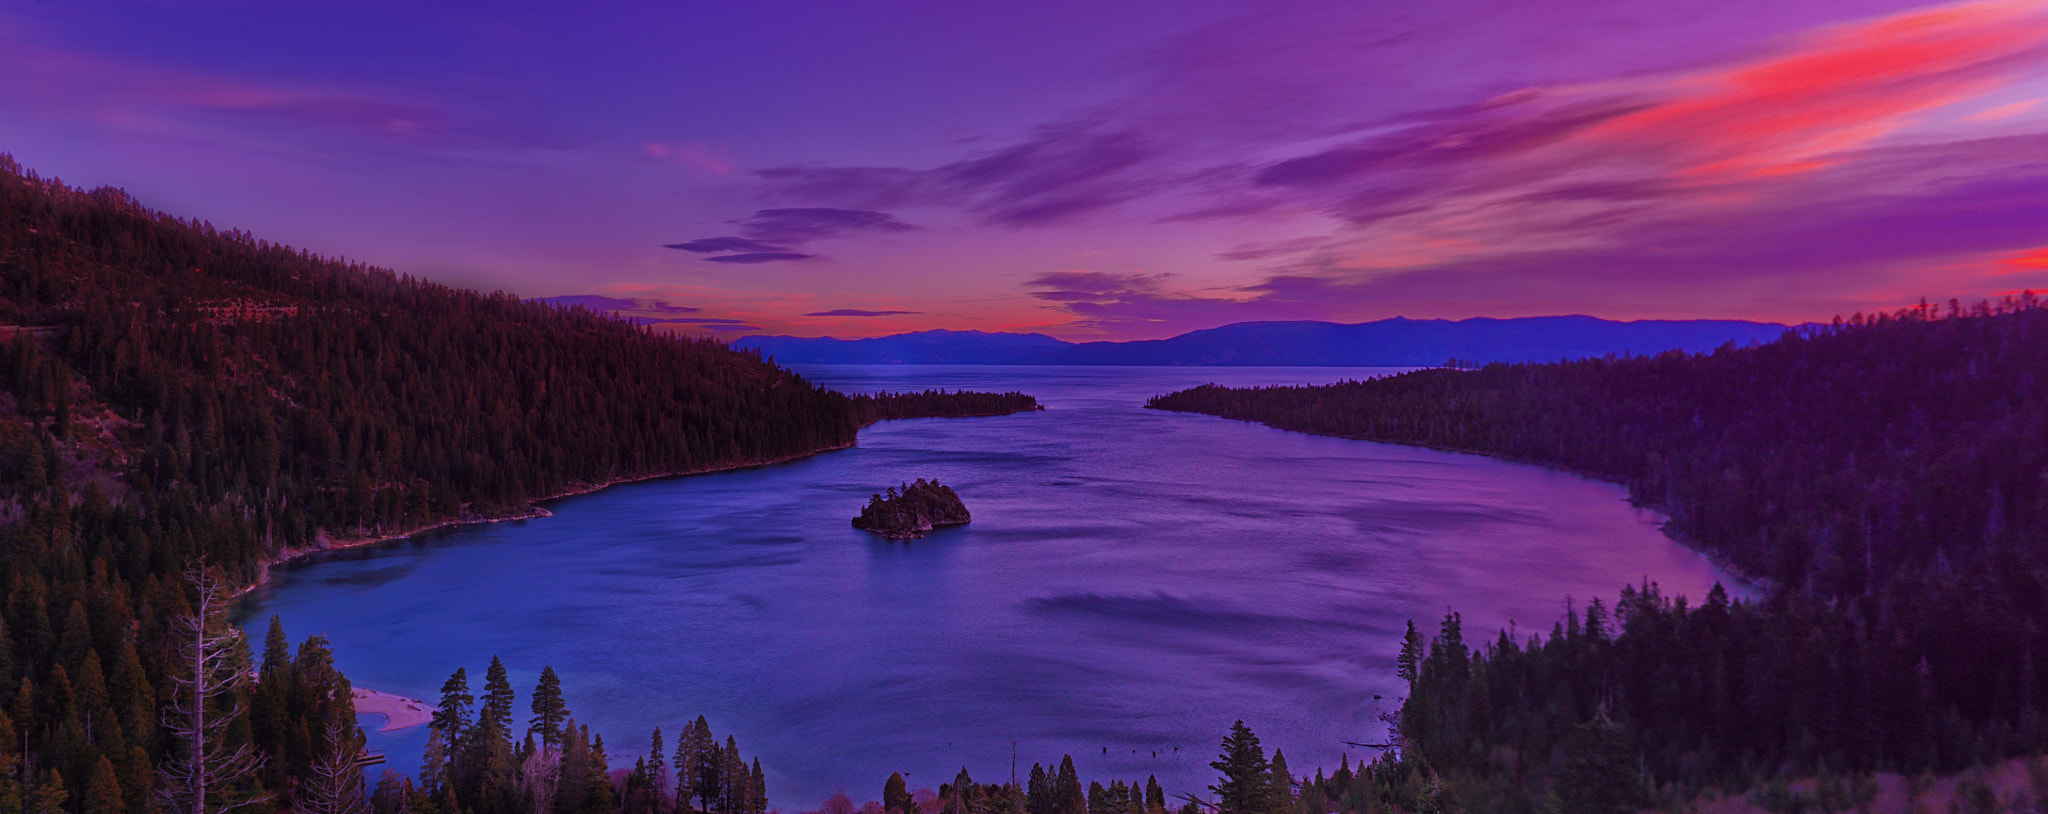 Photograph Emerald Bay Sunrise by Ani Pandit on 500px